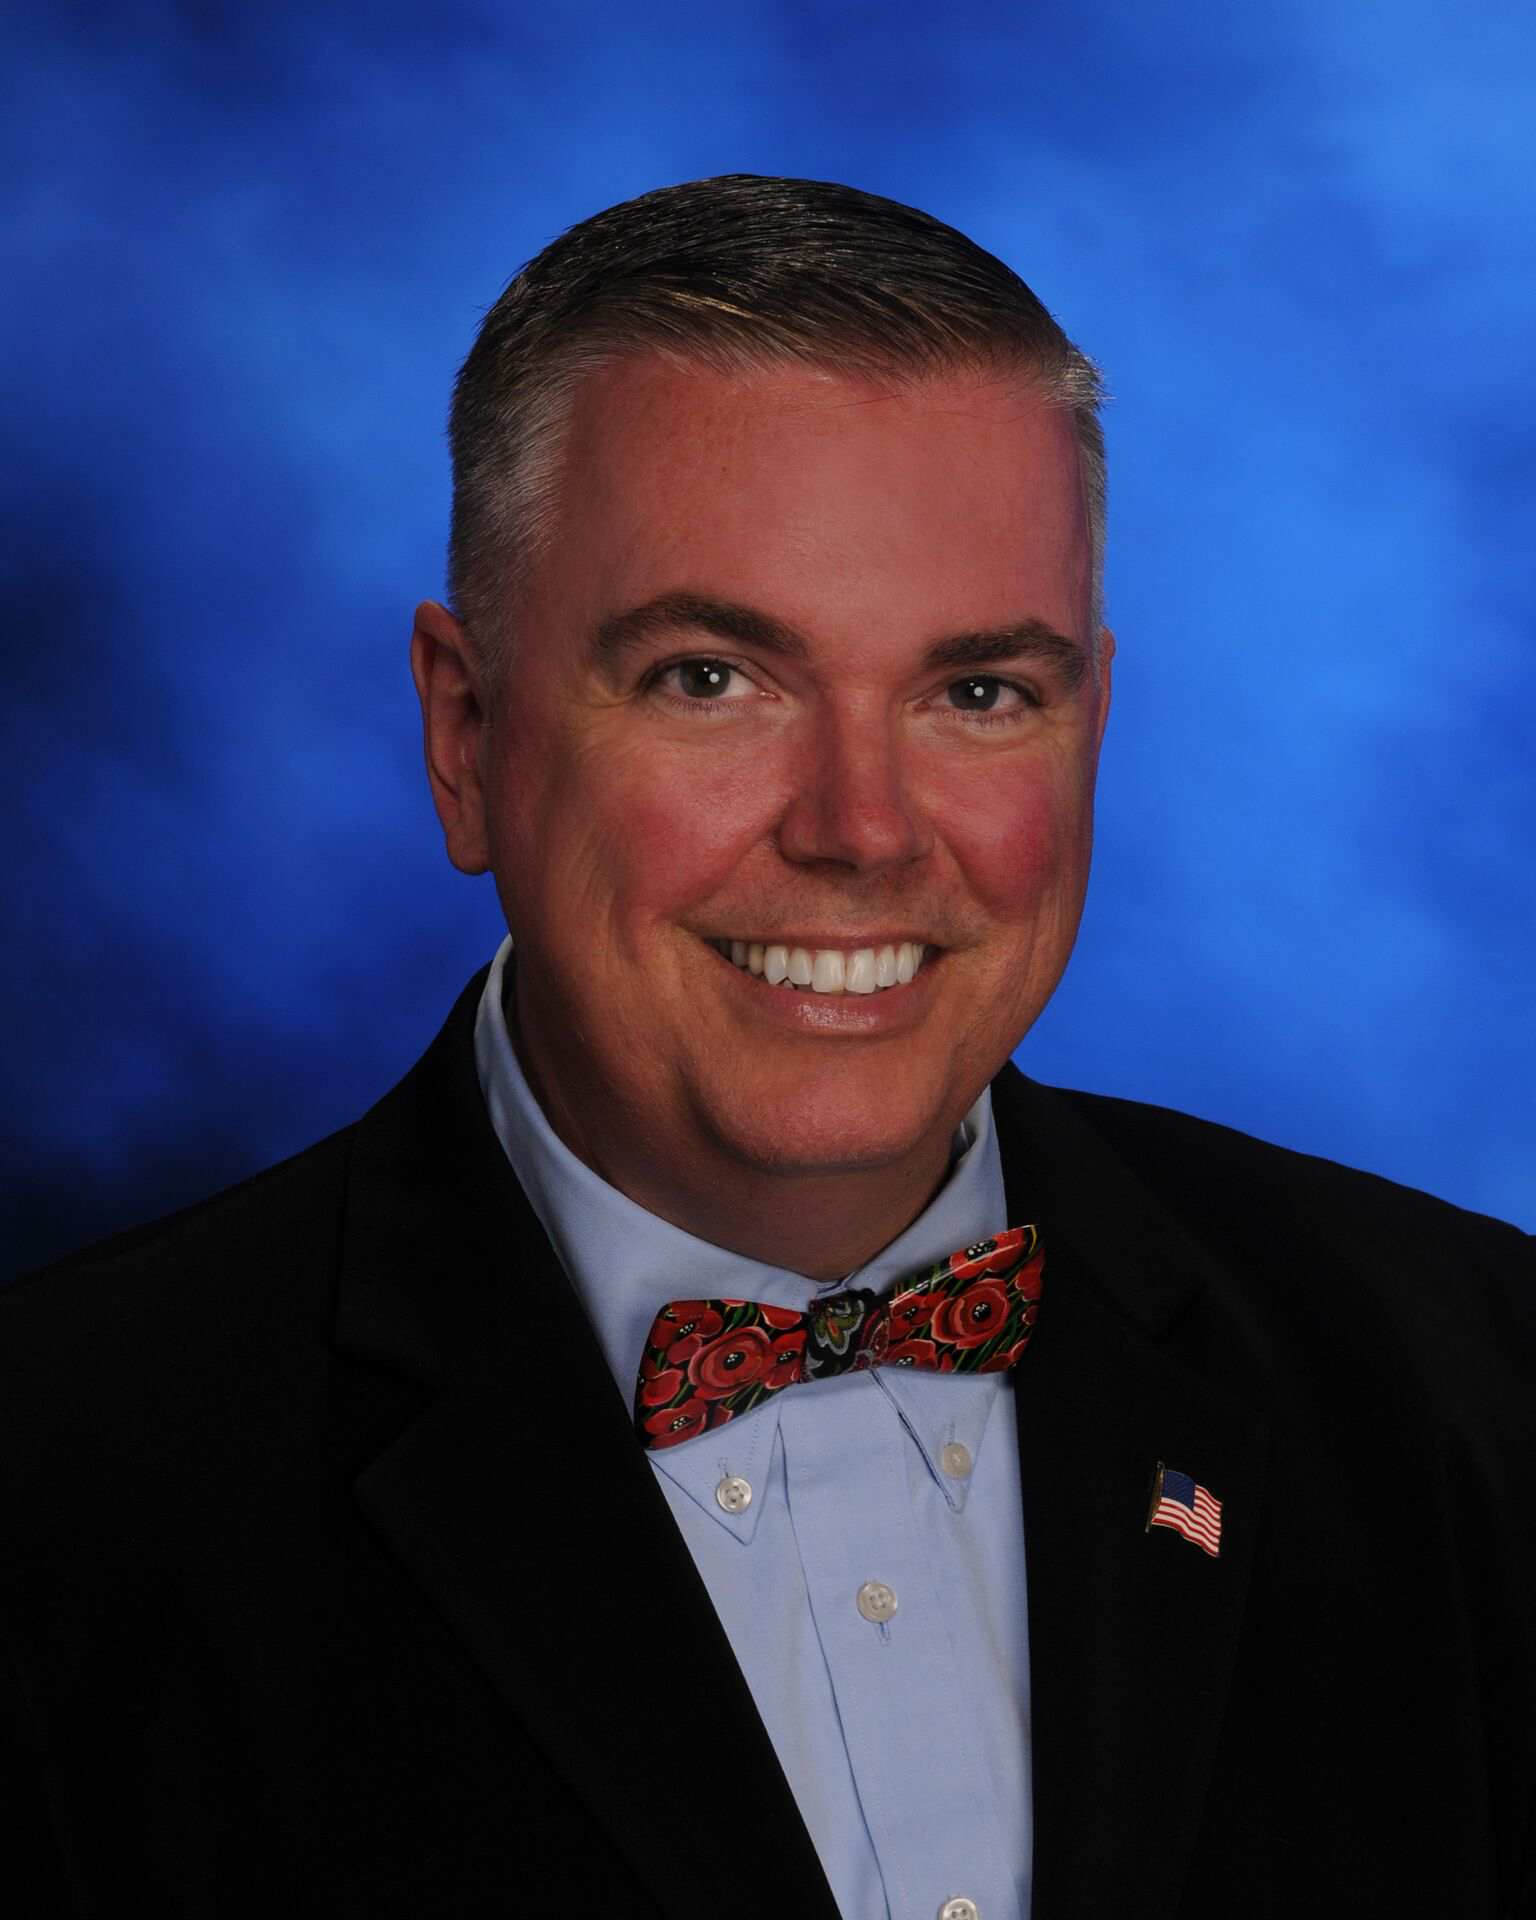 Sea View Elementary School Principal, Timothy Steele